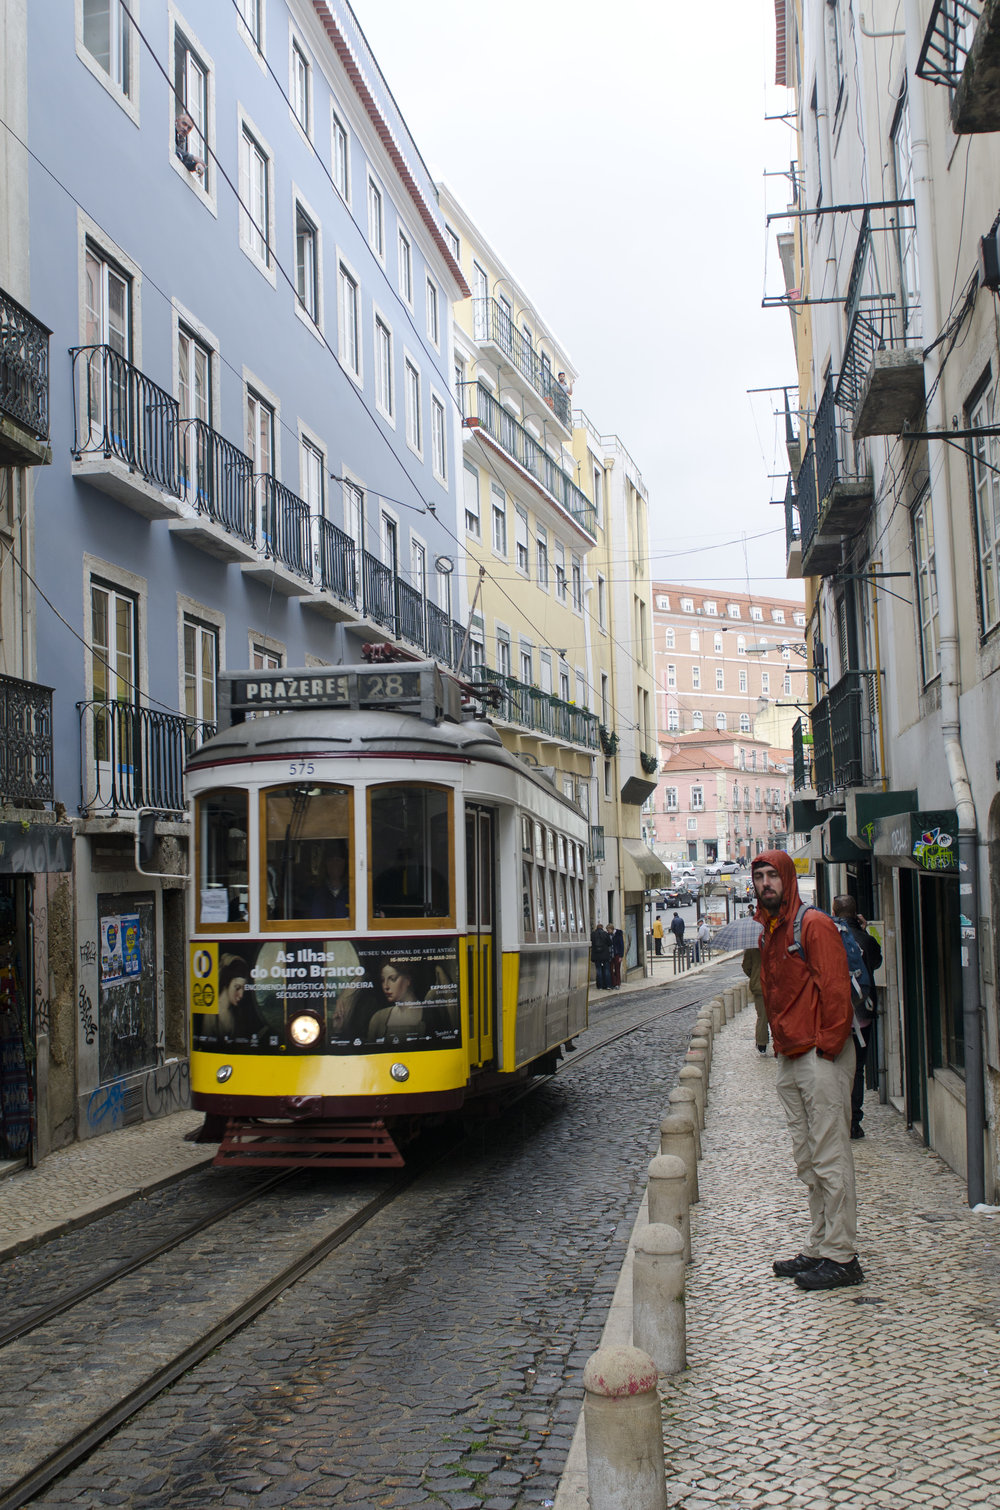 Loved riding this 1920s tram that is still part of Lisbon's public transport system